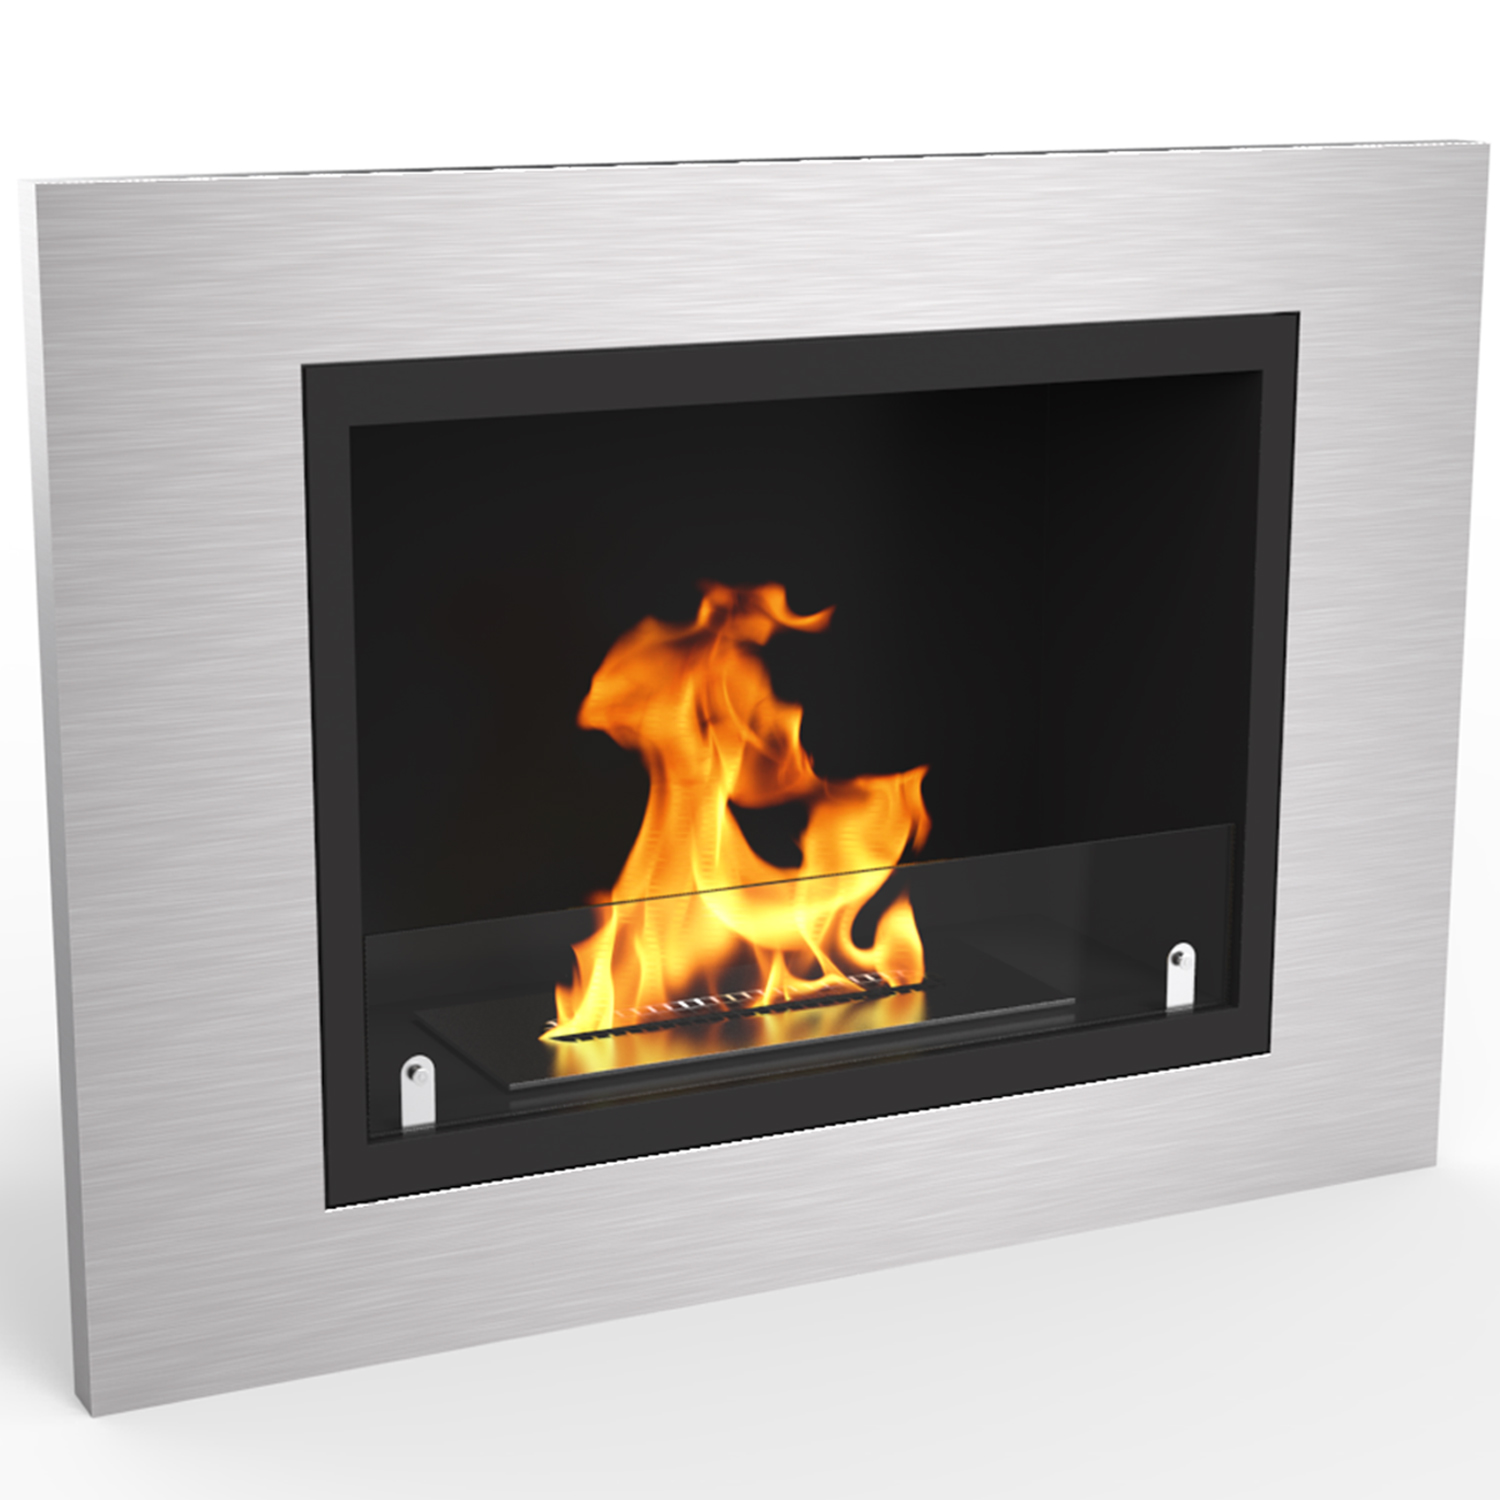 Venice 32 Inch Ventless Built In Recessed Bio Ethanol Wall